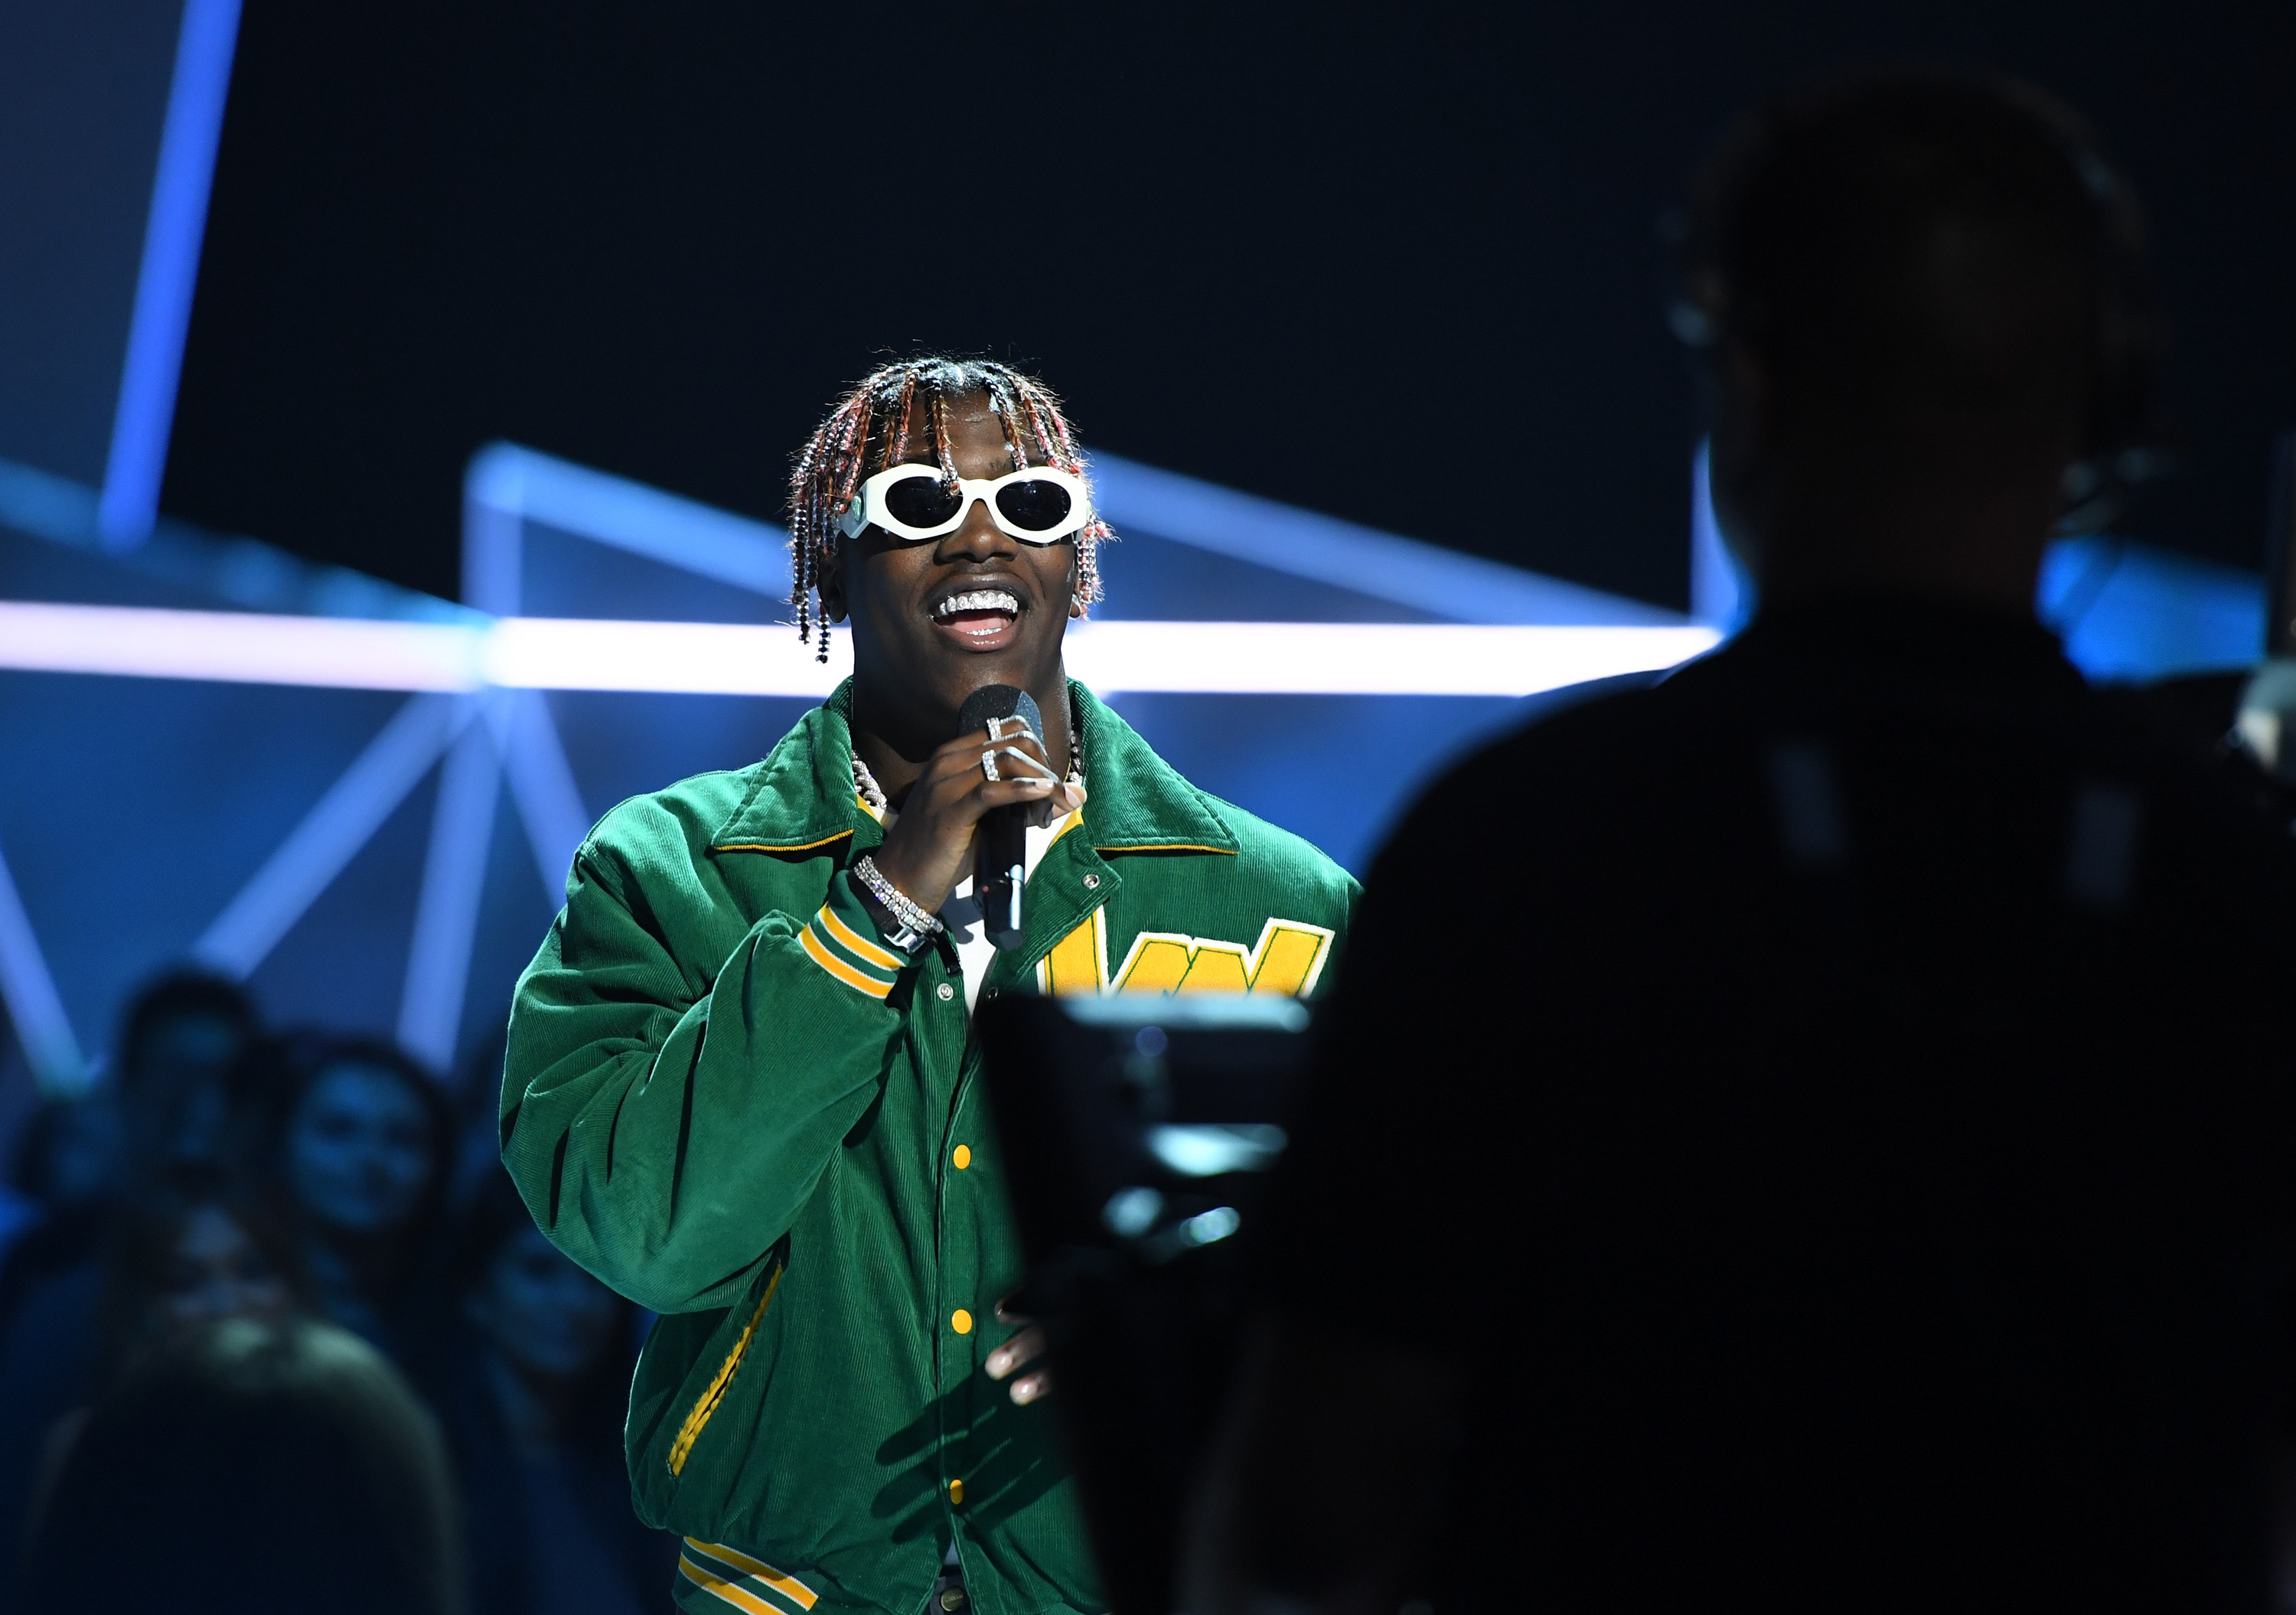 f53f432a63766 Lil Yachty at the 2017 MTV Awards. Photography Kevin Winter Getty Images.